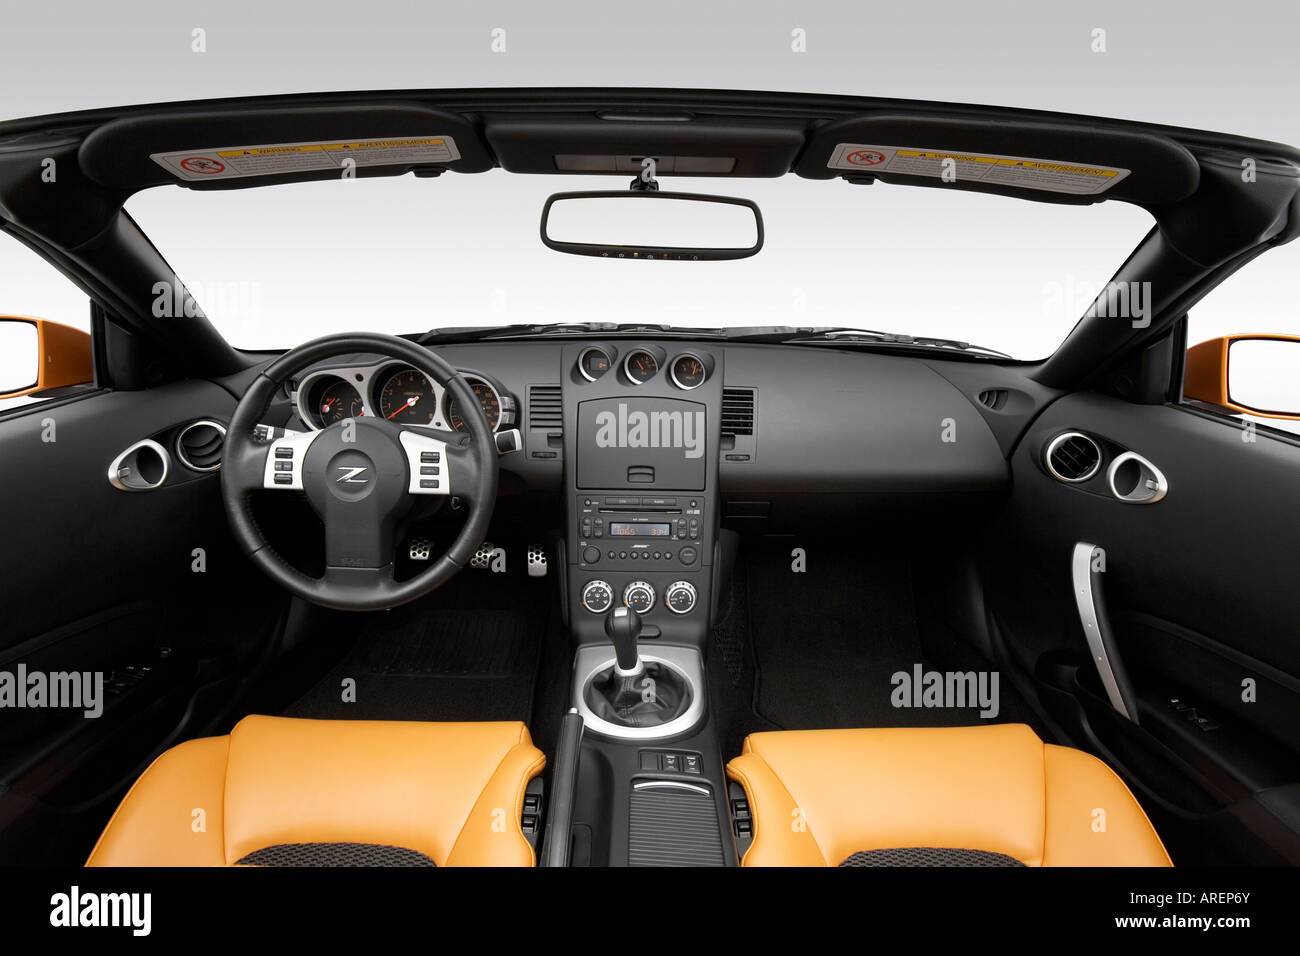 2006 nissan 350z interior image collections hd cars wallpaper 2006 strosek nissan 350z gallery hd cars wallpaper 2006 nissan 350z convertible interior gallery hd cars vanachro Images